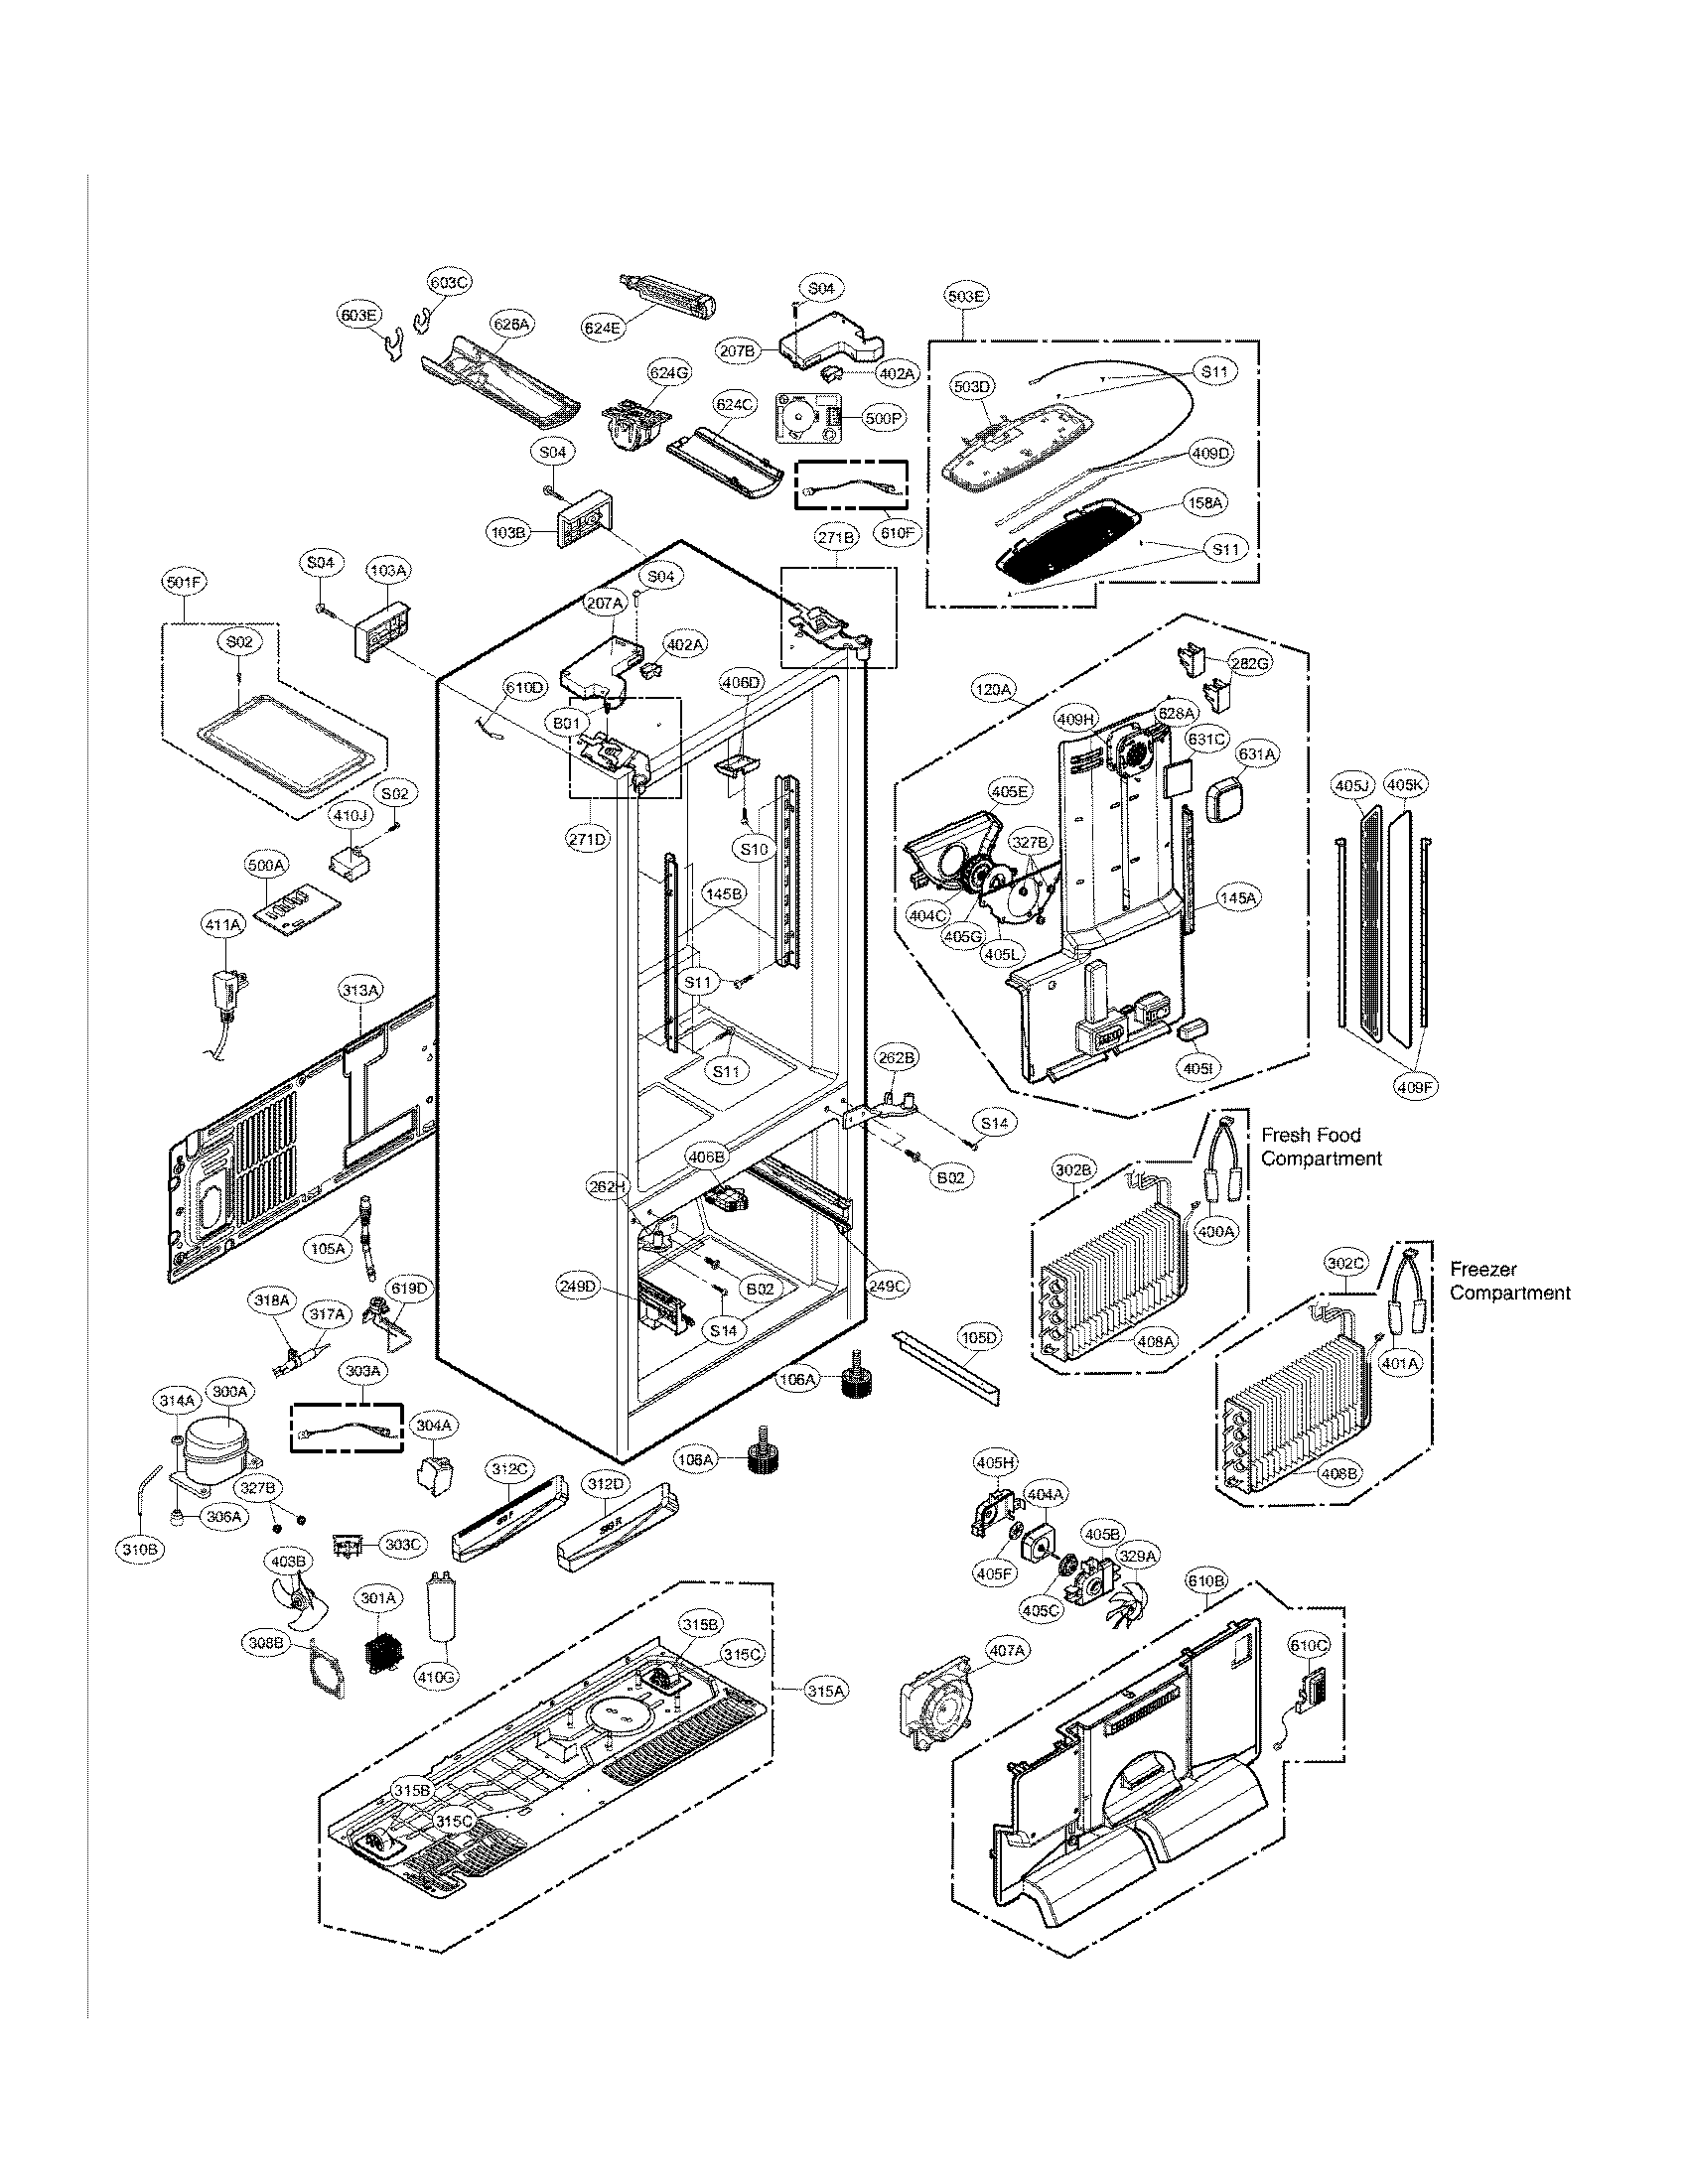 Manual For Sears Kenmore Refrigerator